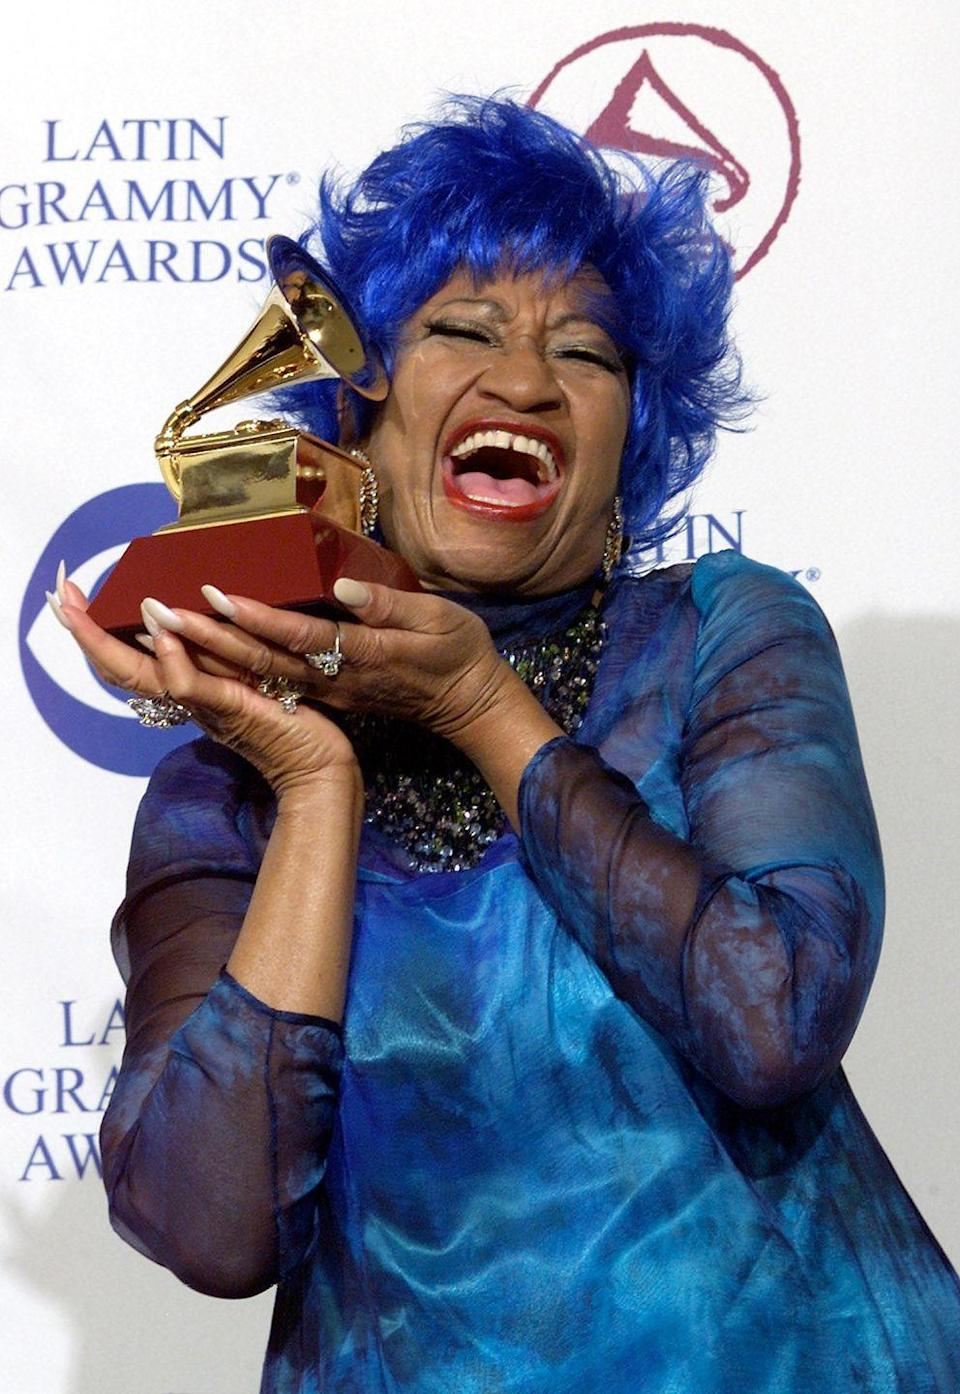 <p>Cruz strikes a poses with her Grammy for Best Salsa Performance at the 1st Annual Latin Grammy Awards. She's grinning from ear to ear holding her prize on the red carpet.</p>